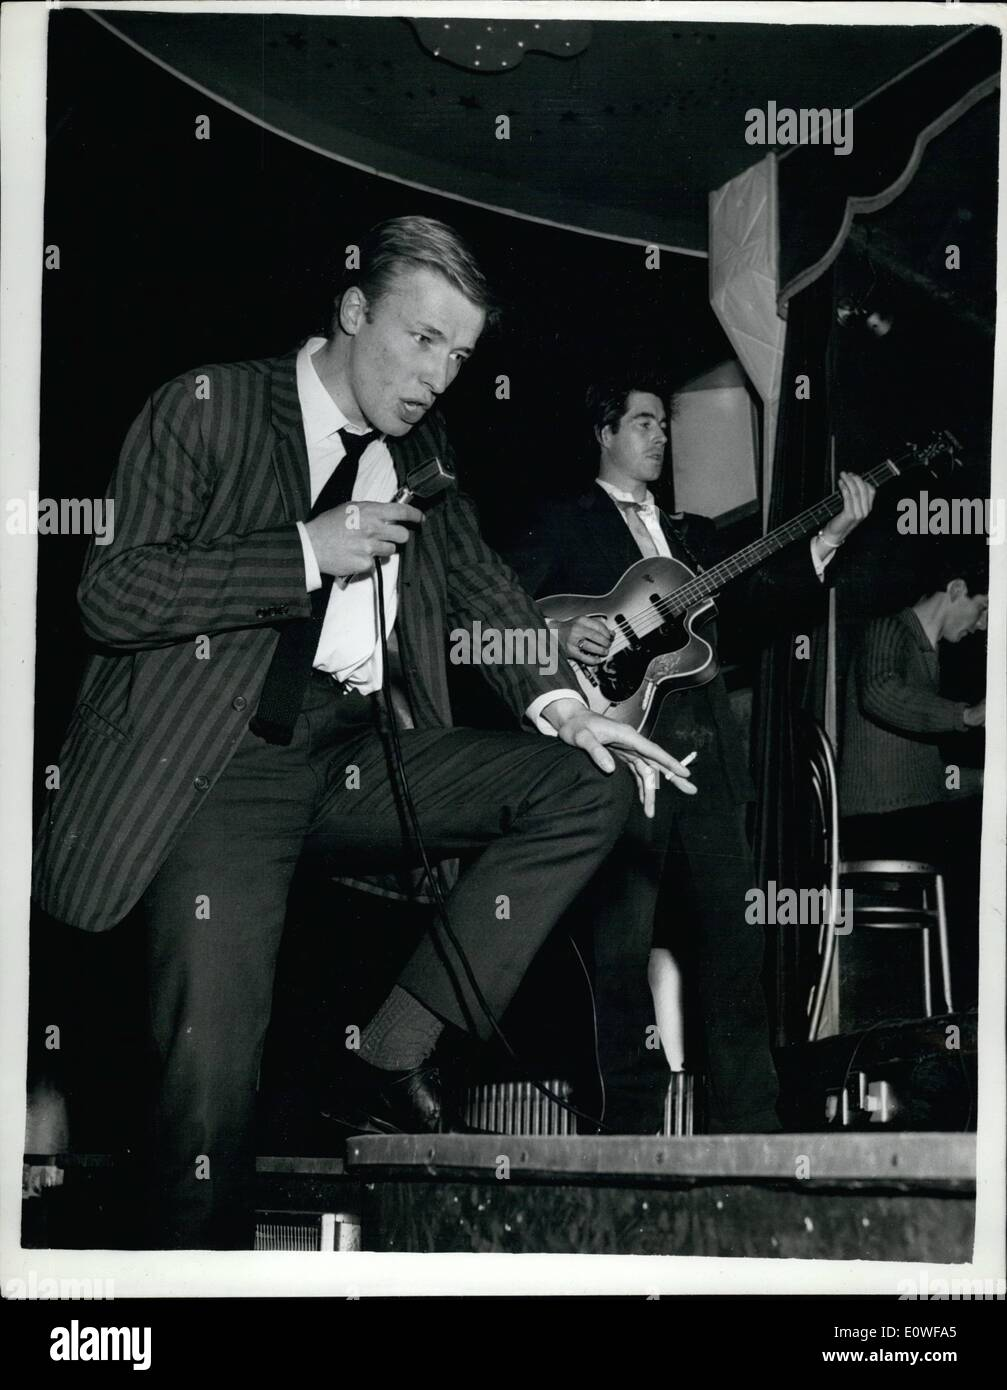 Aug. 08, 1962 - POP SINGER SENT DOWN FROM LONDON UNIVERSITY Pop singer MIKE SARNE, 22, who is in his second year Stock Photo